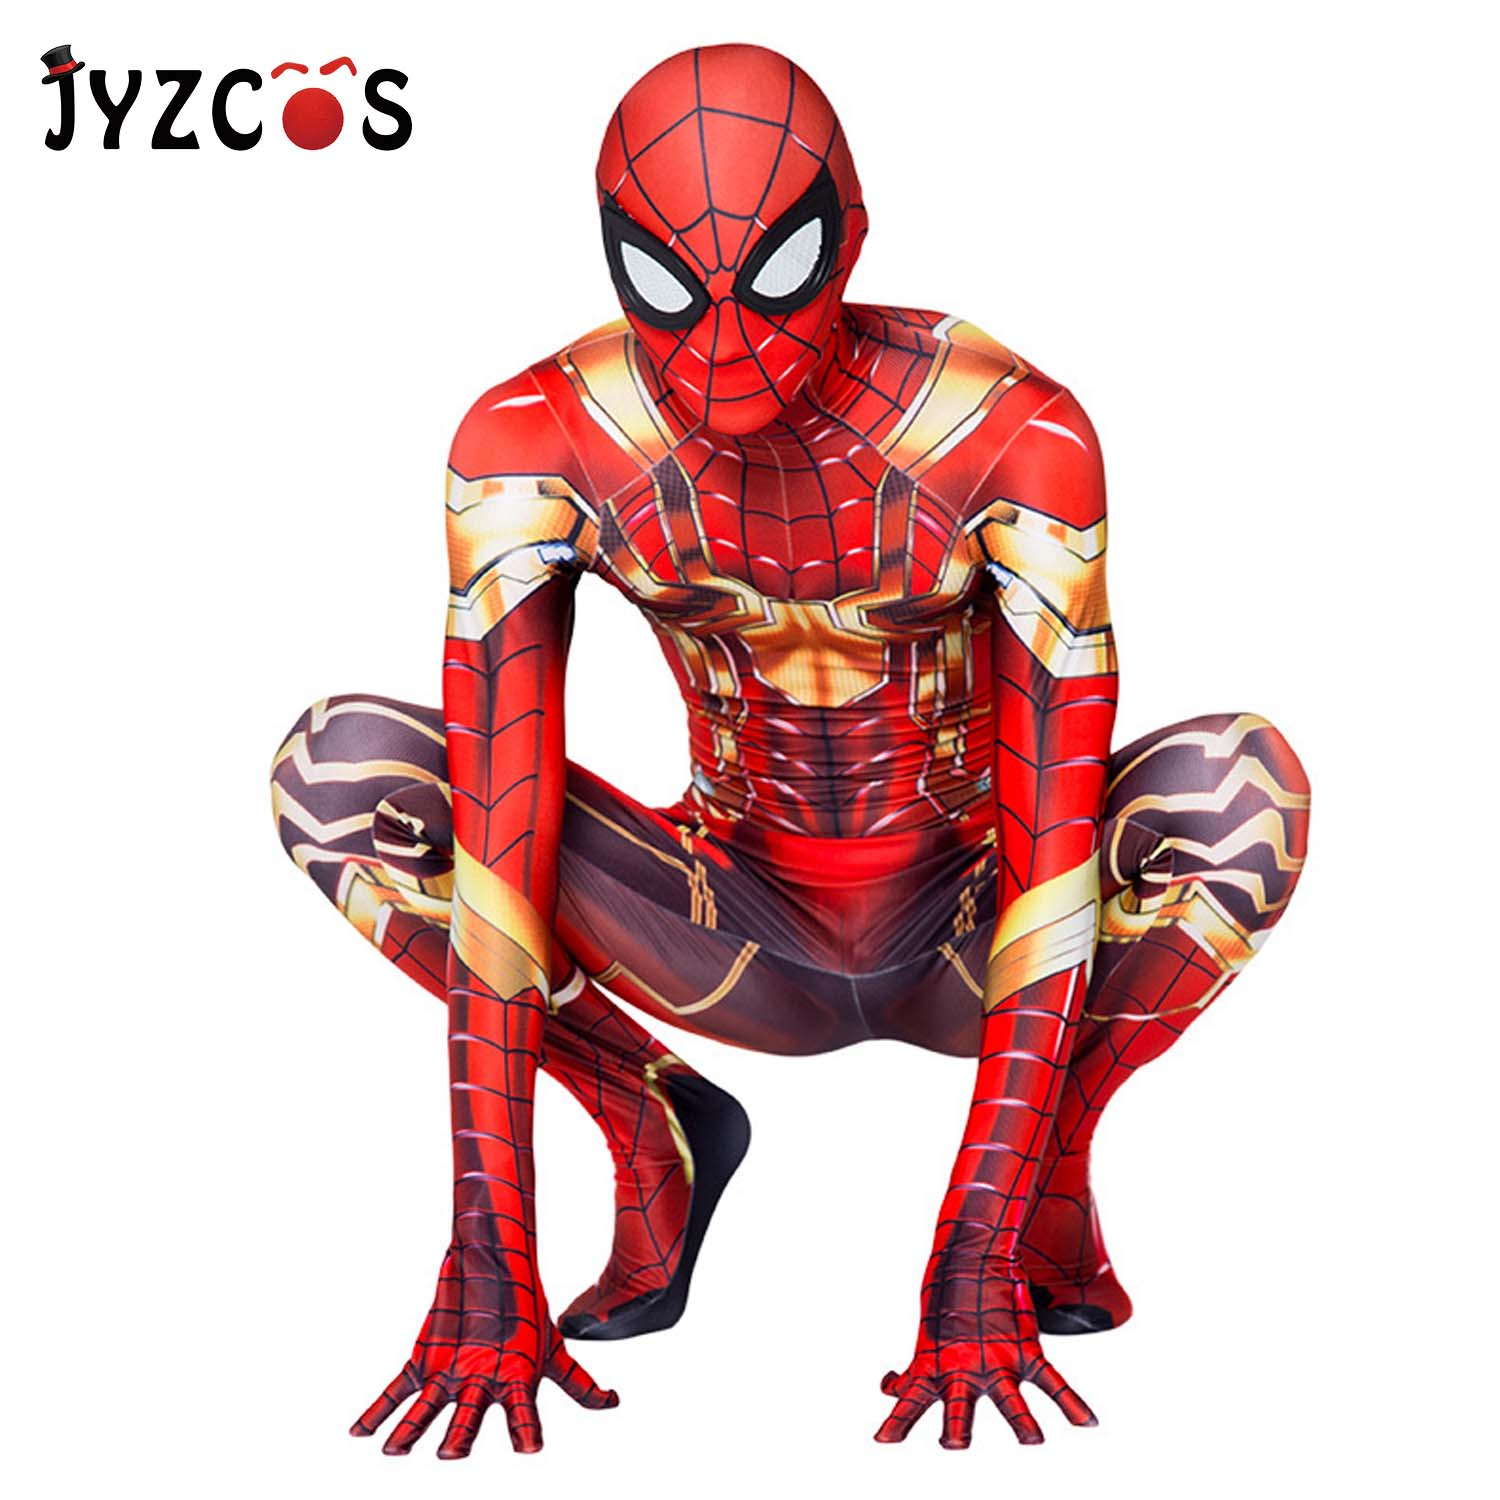 JYZCOS New Iron Spiderman Costume Spider Man Anime Suit Spider-Man Halloween Costumes Men Adult Kids Spider-Man Cosplay Clothing